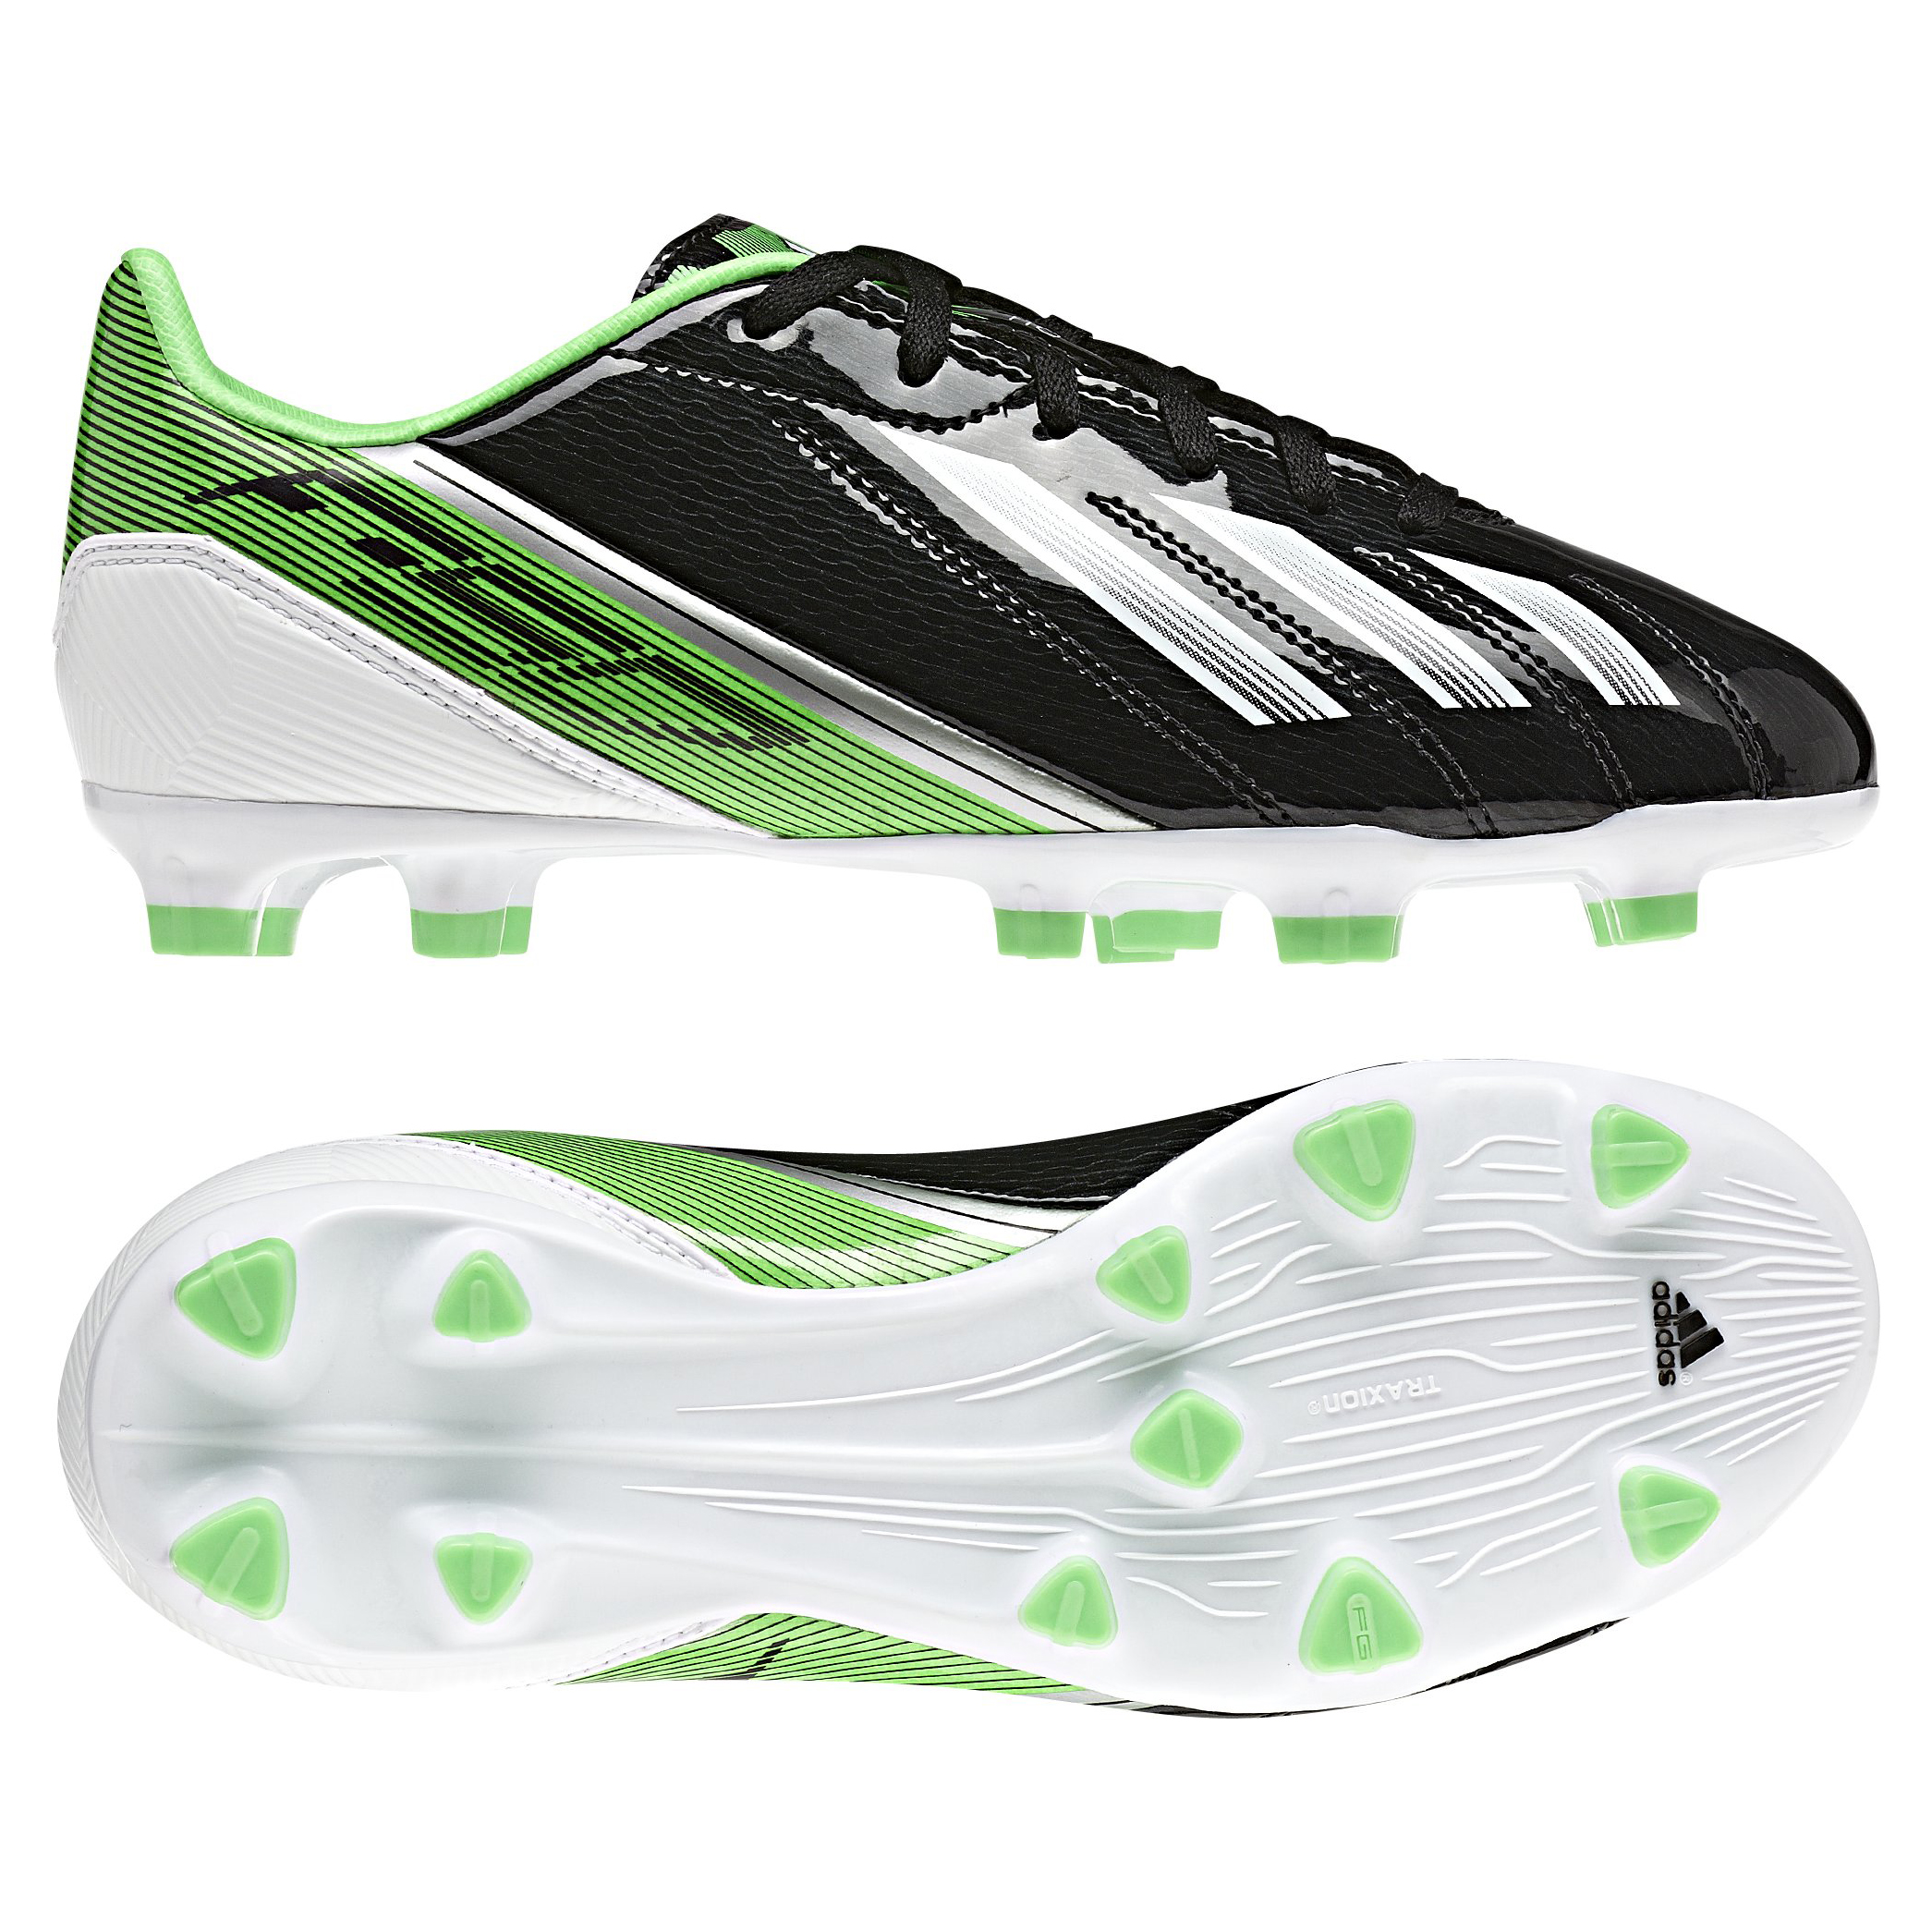 adidas Adizero F10 TRX Firm Ground Football Boots - Black/Running White/Green Zest - Kids